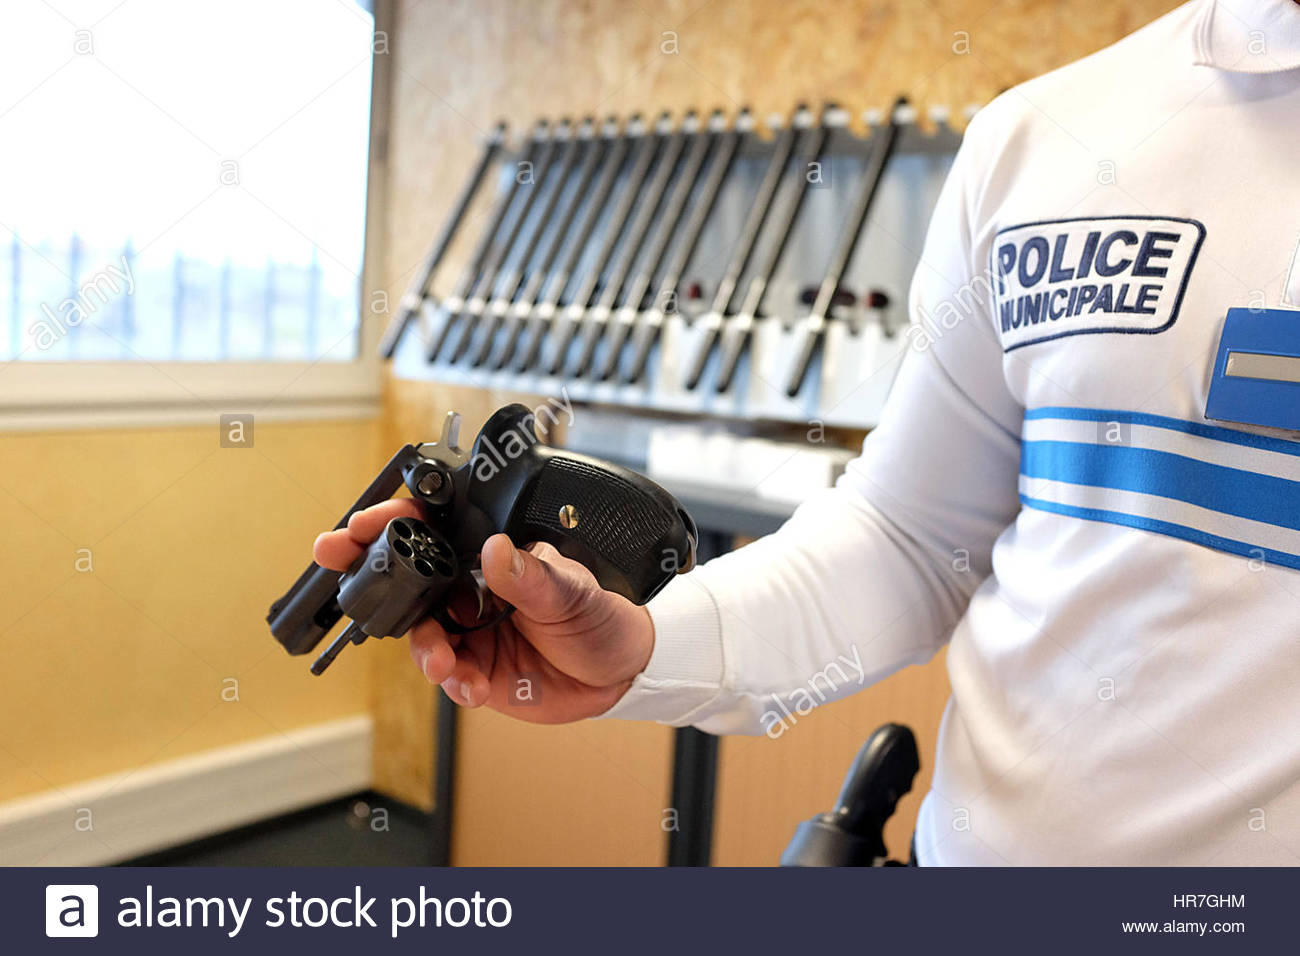 A SIG SAUER 9MM REVOLVER, POLICE OFFICE, PAU, PYRENEES ATLANTIQUES, FRANCE Stock Photo